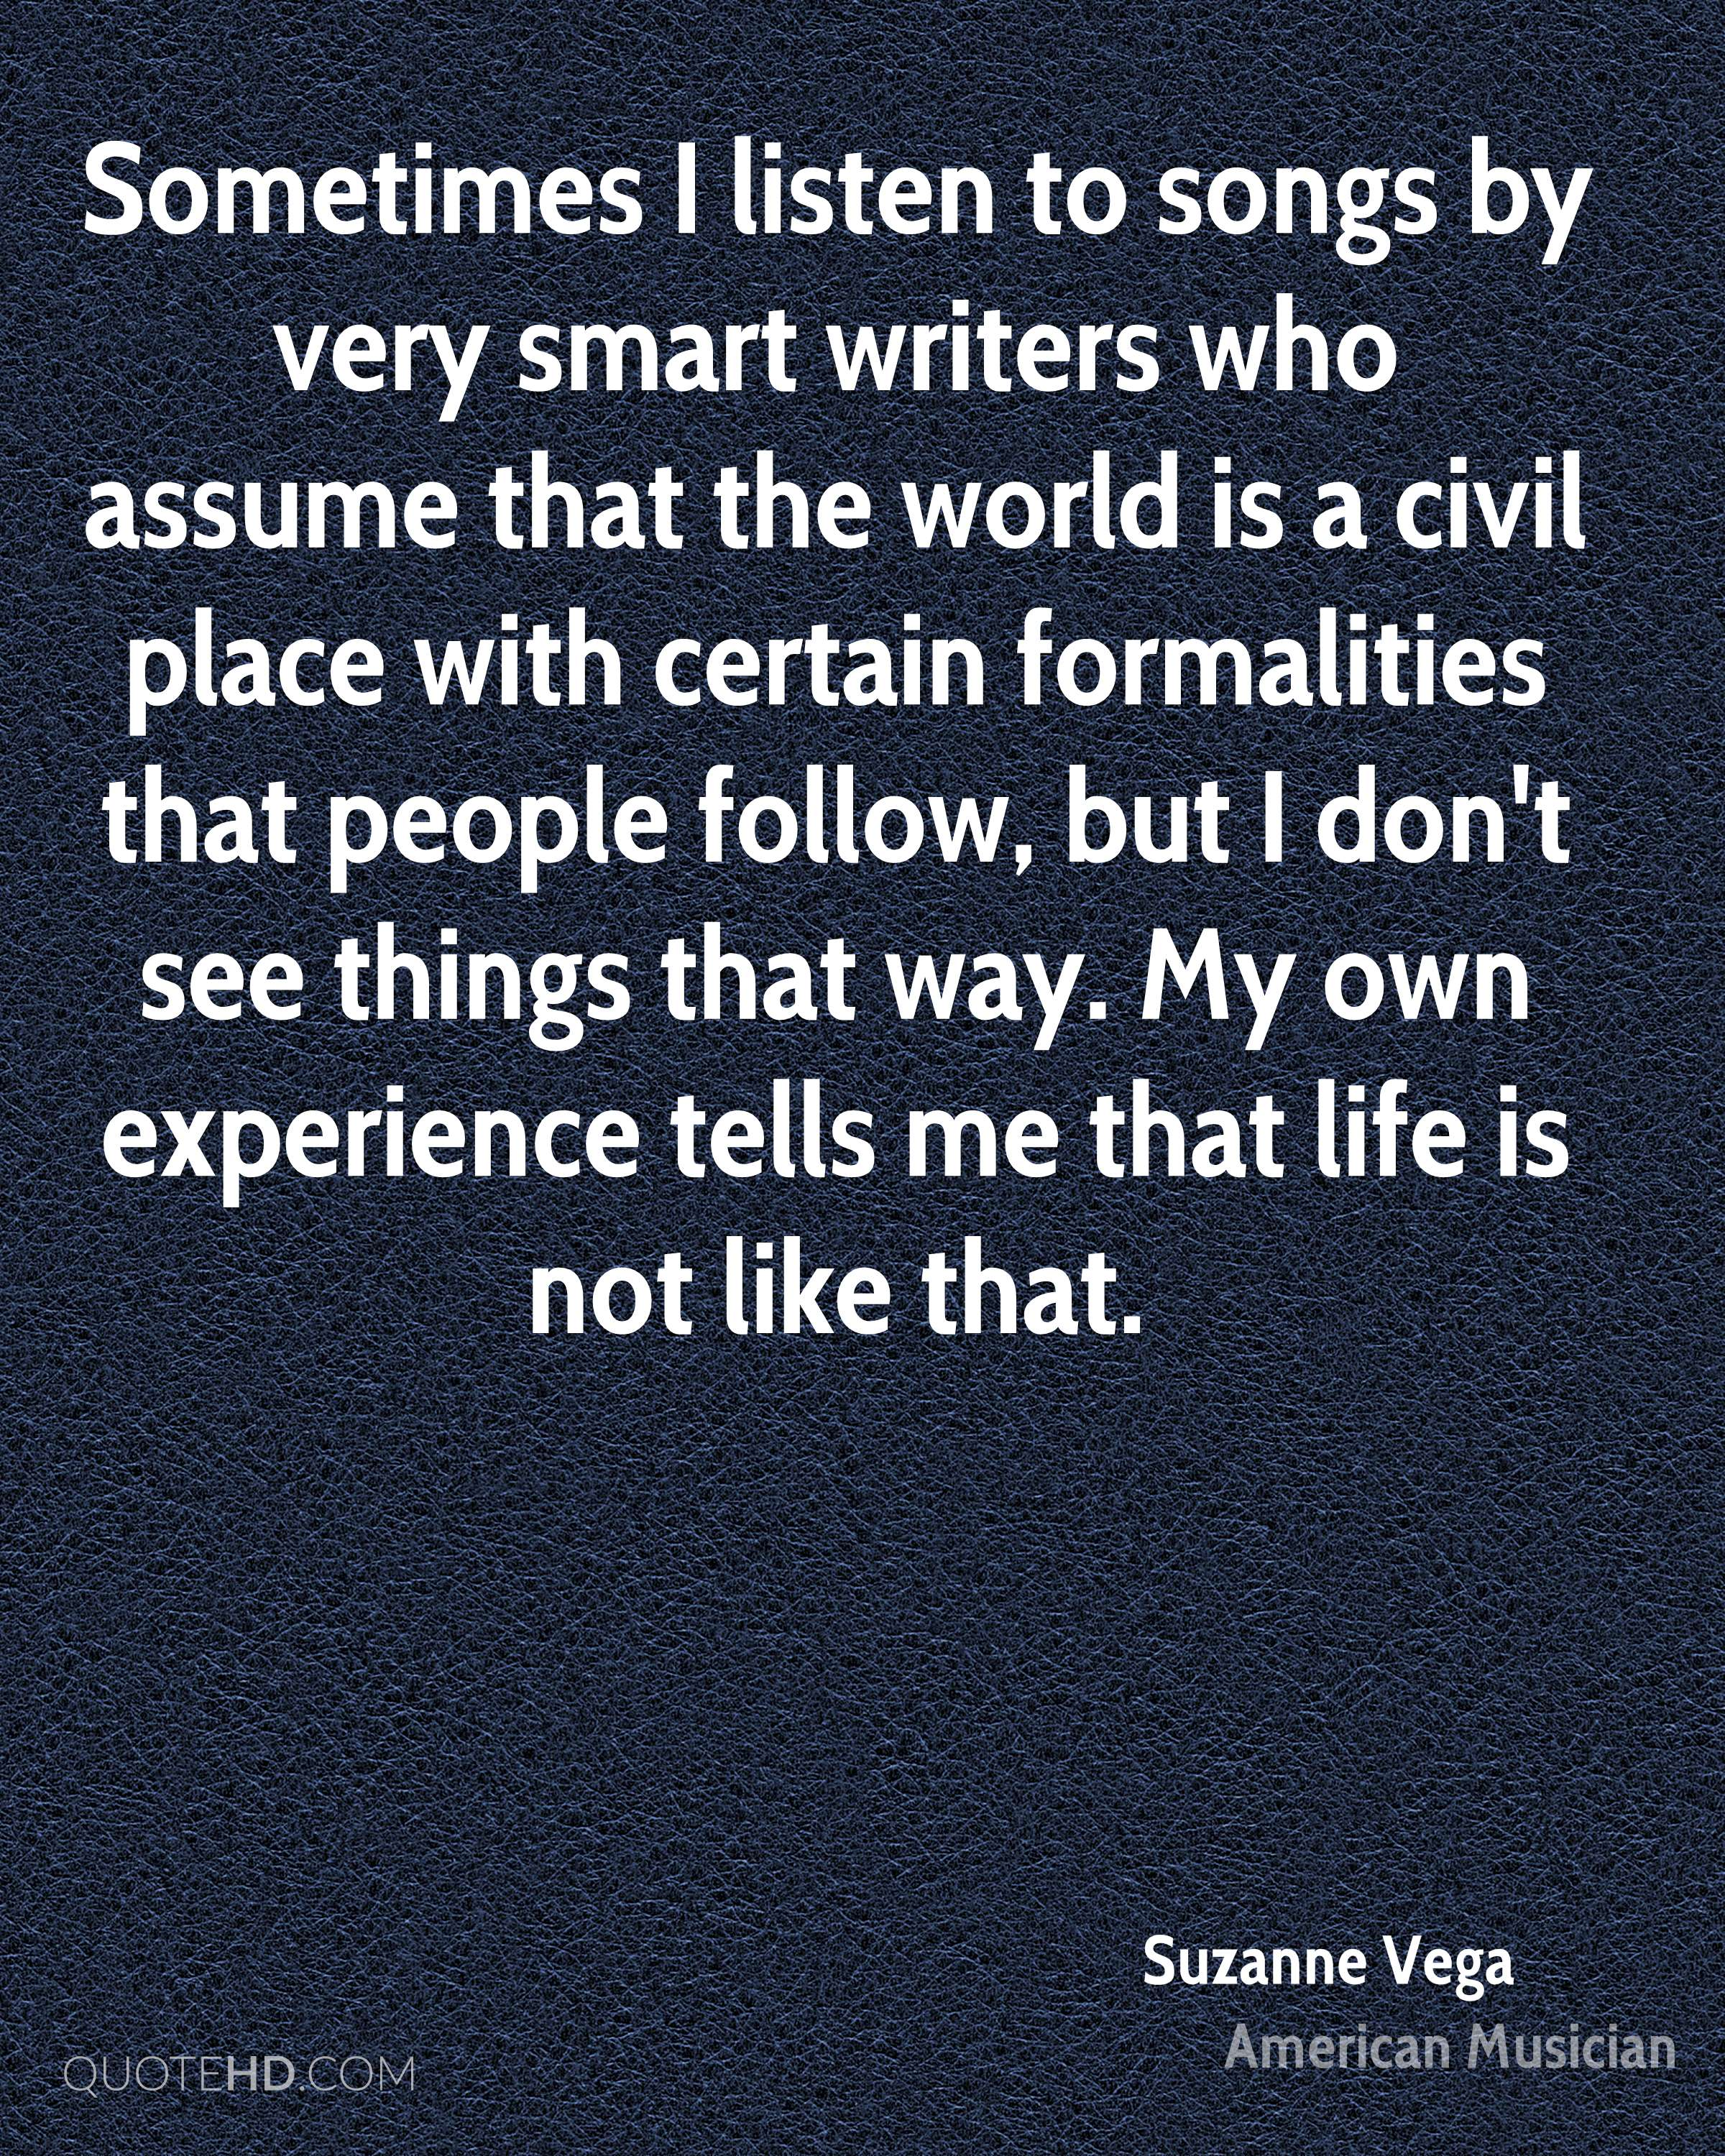 Sometimes I listen to songs by very smart writers who assume that the world is a civil place with certain formalities that people follow, but I don't see things that way. My own experience tells me that life is not like that.